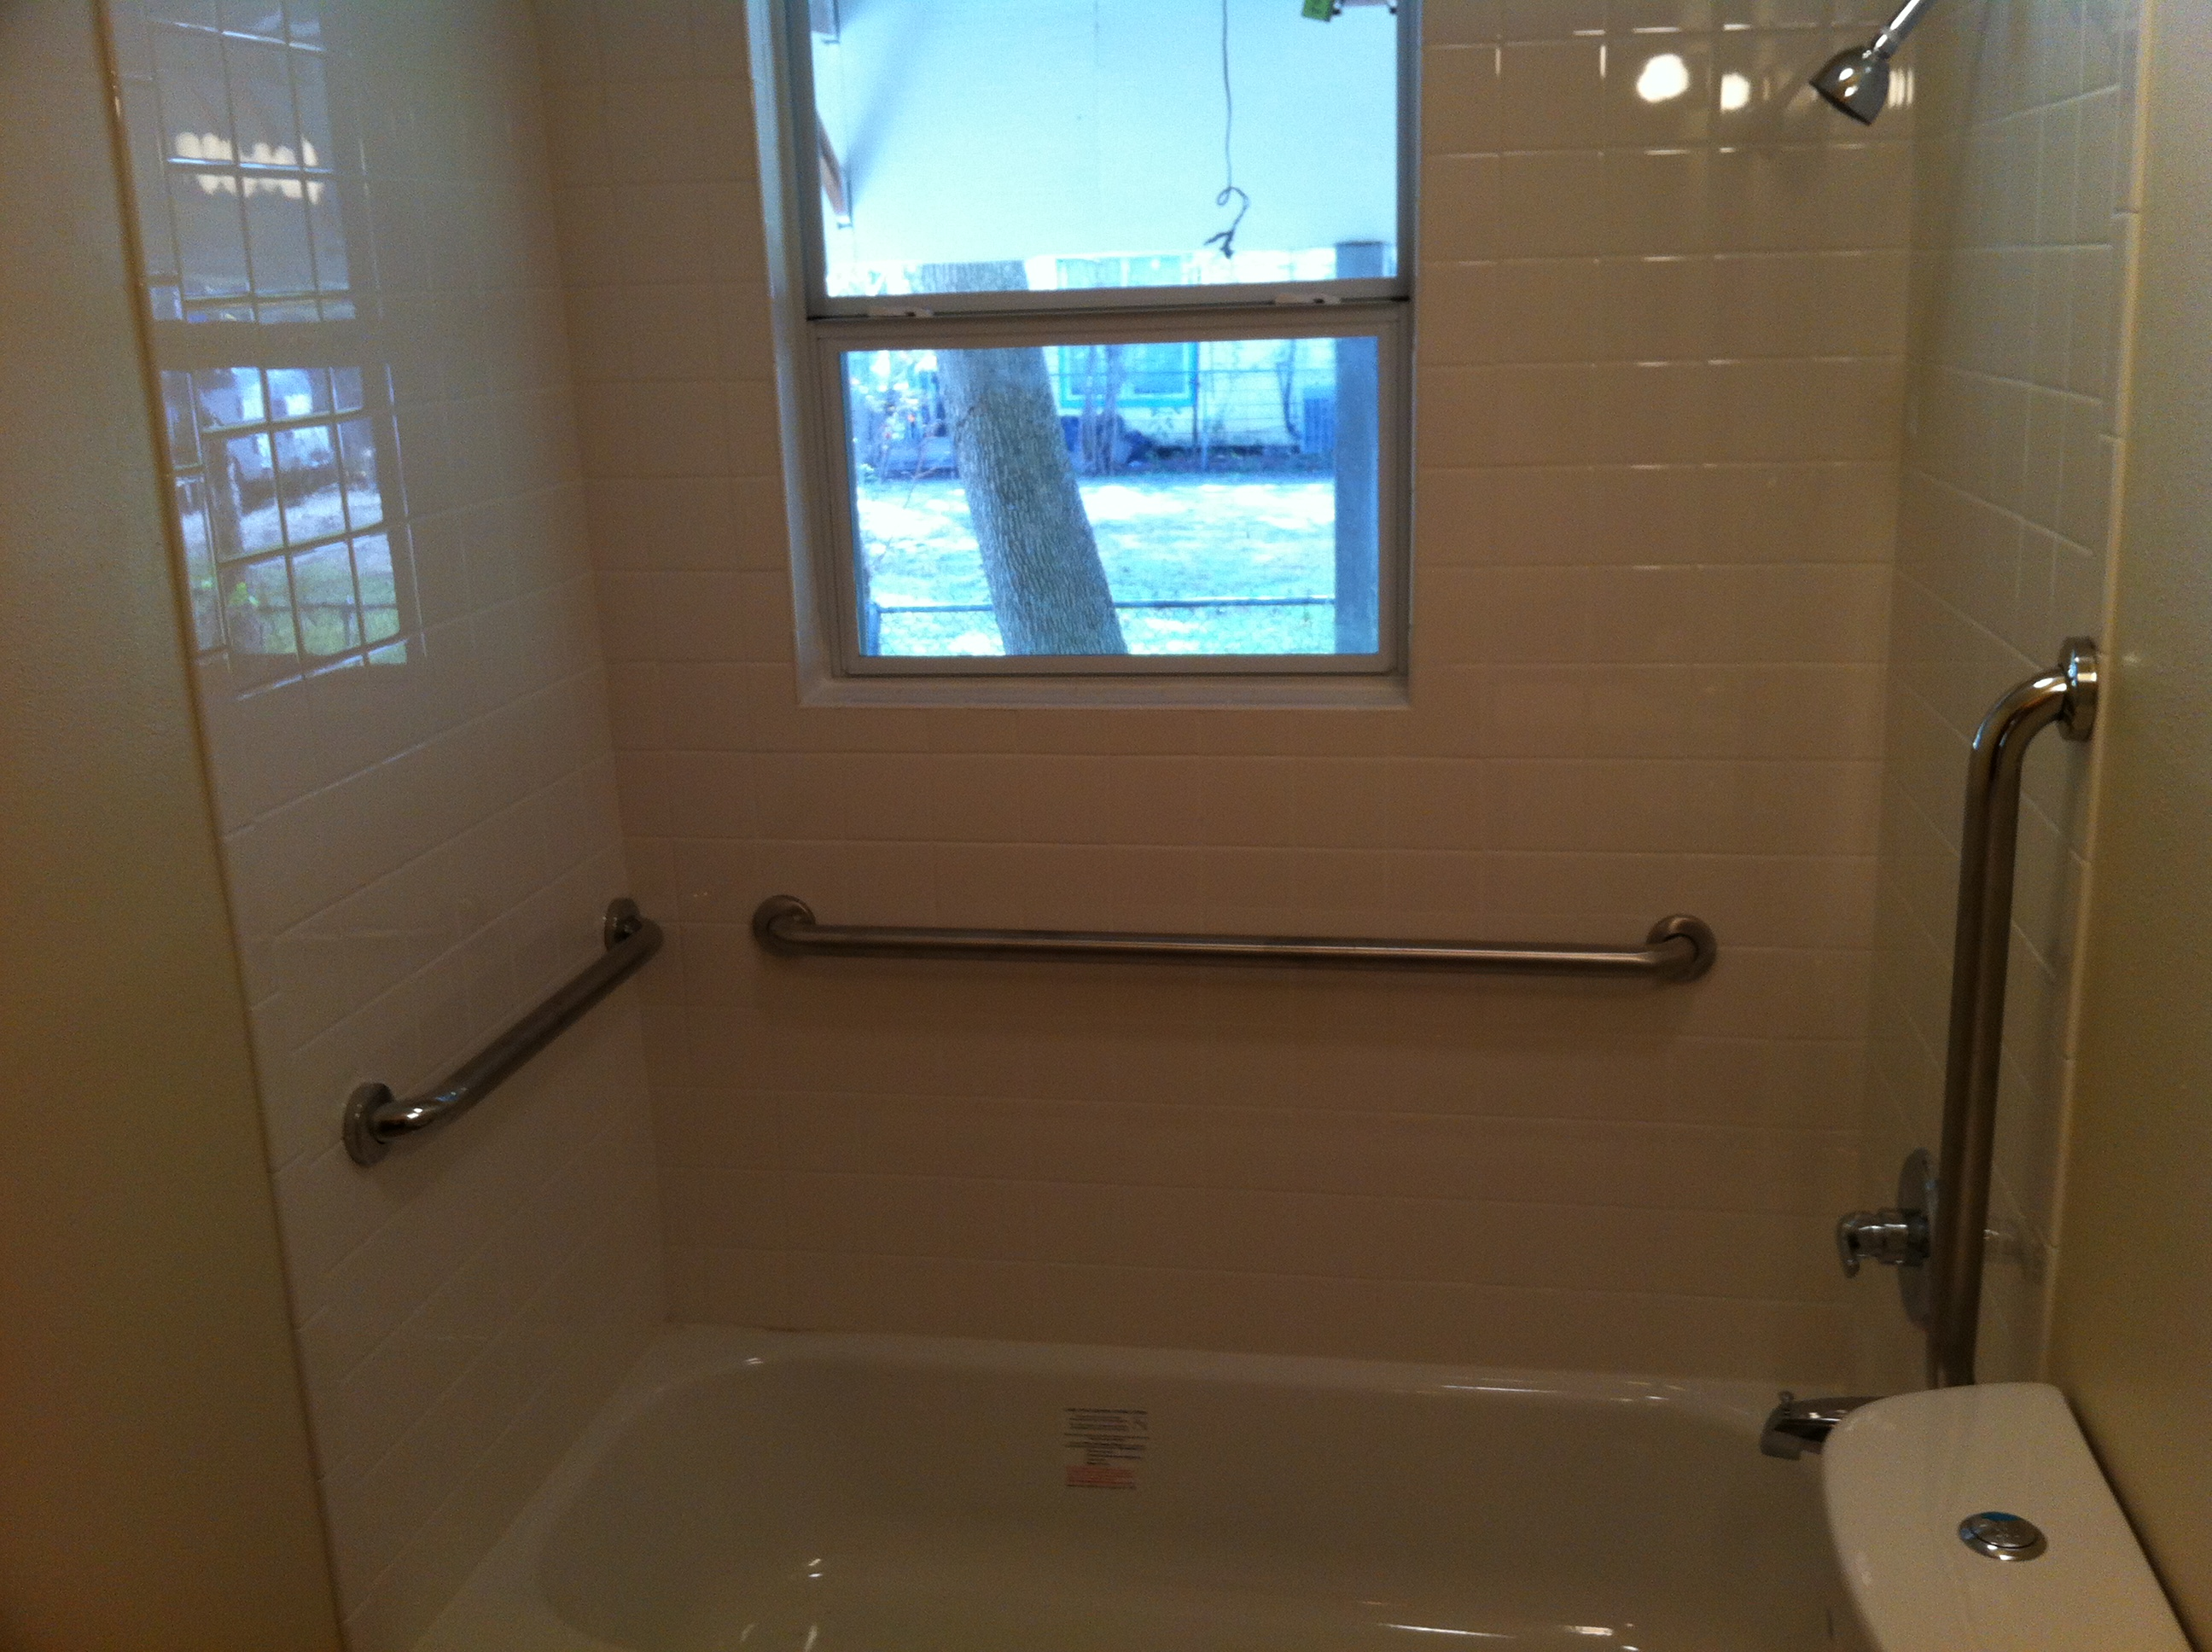 Bathroom Remodeling Katy b-c construction - remodeling katy texas | ada compliant bathrooms